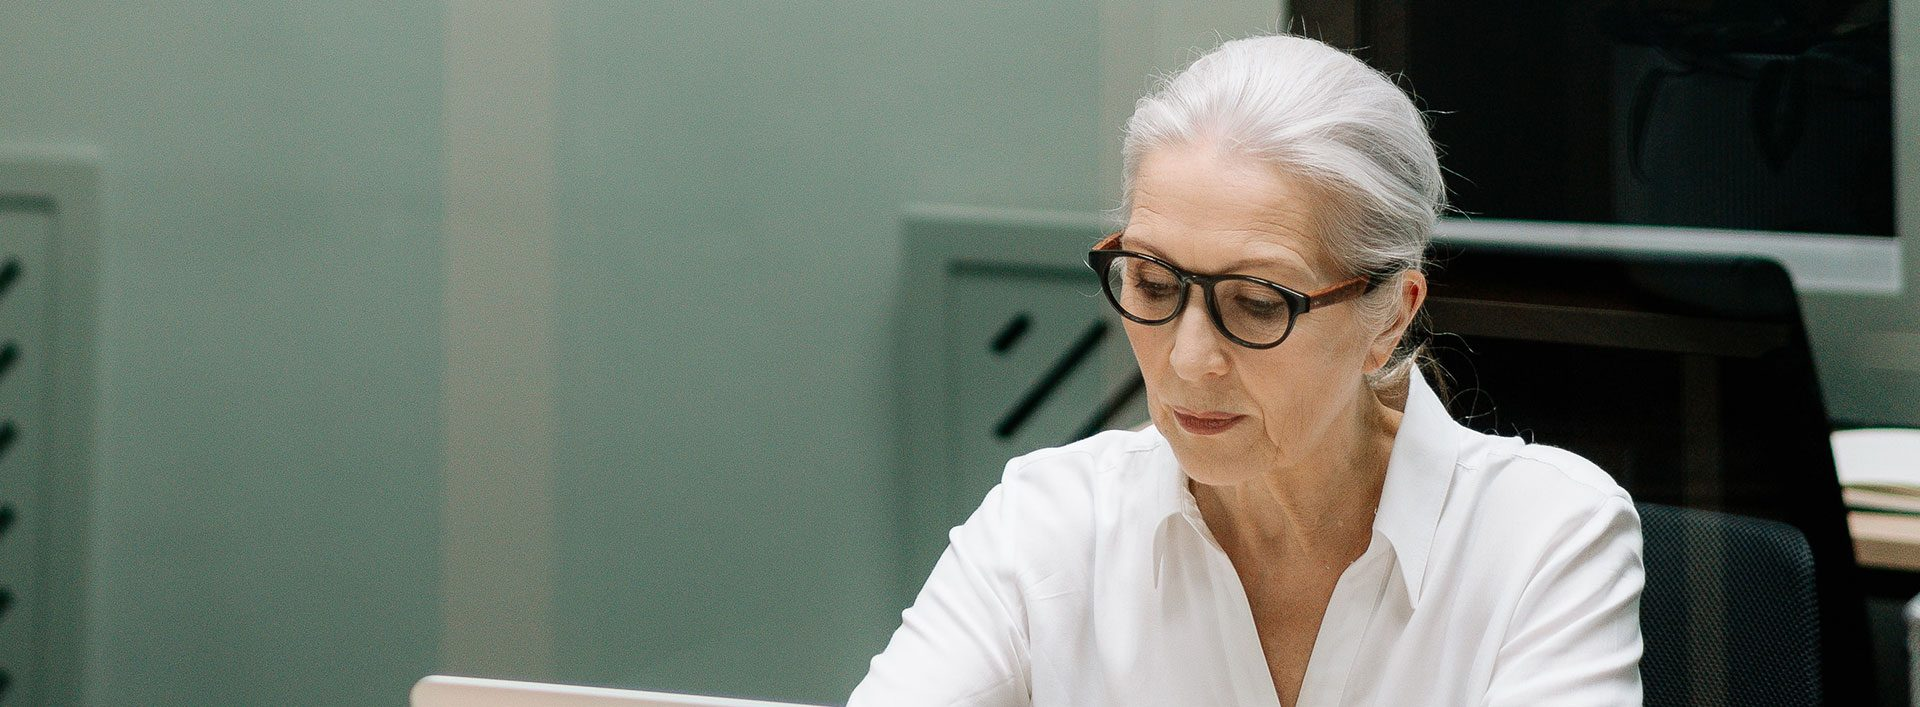 Photo of woman with with white hair and glasses